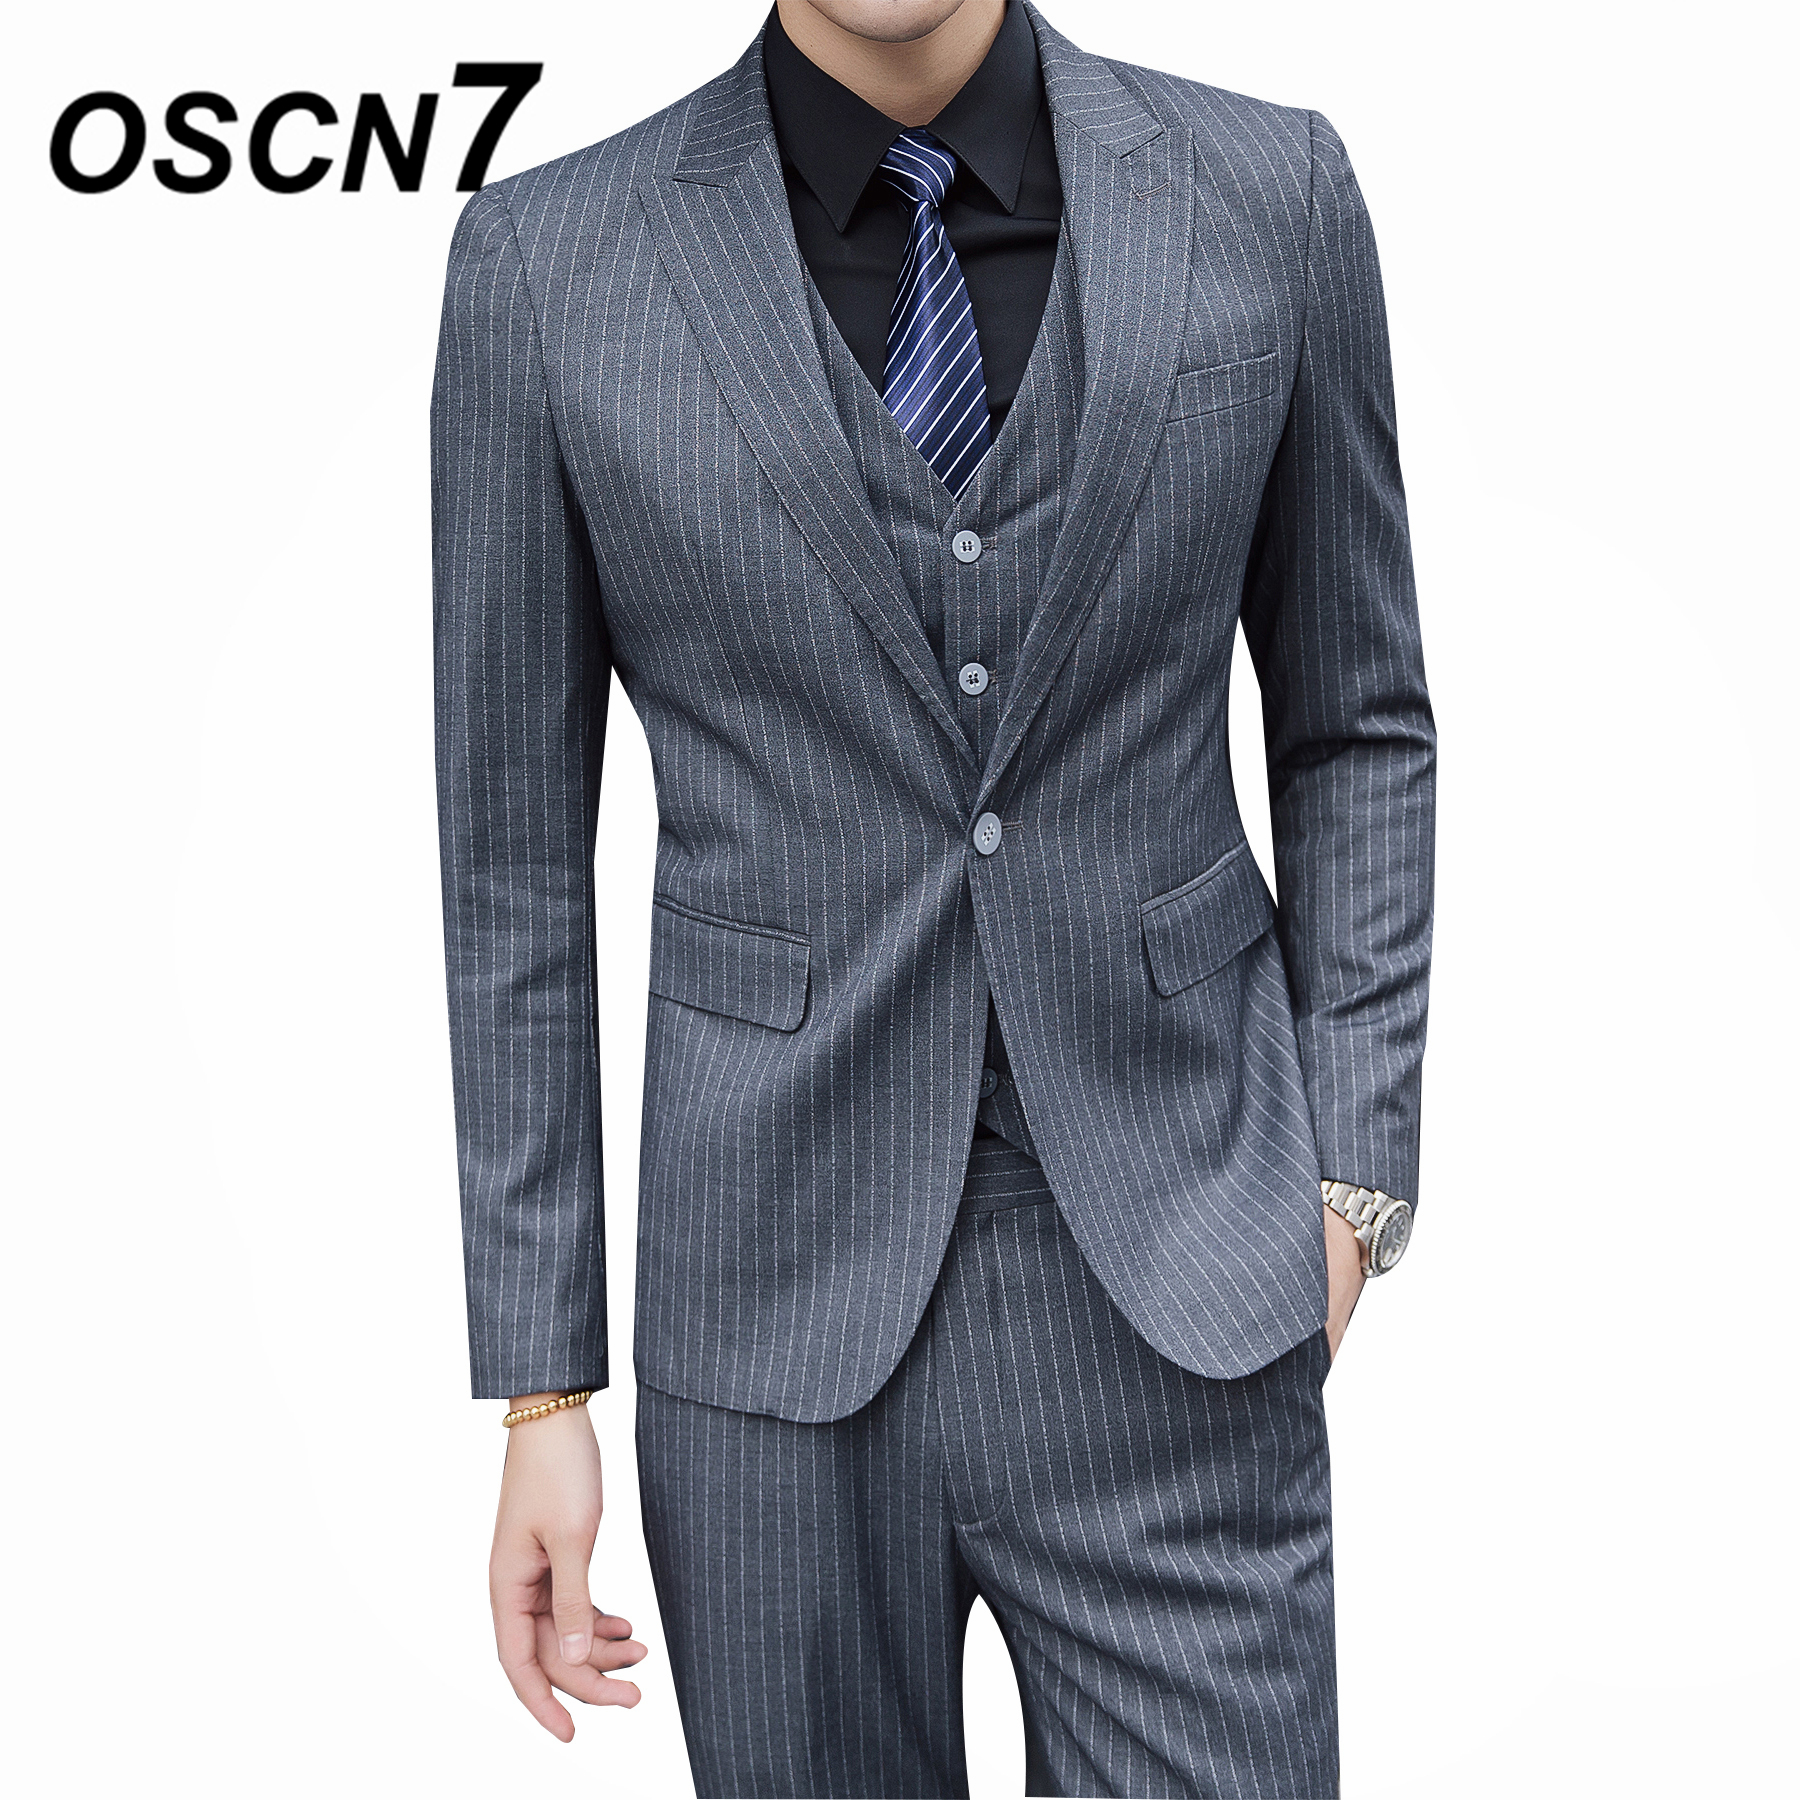 ab83f23c266 Aliexpress.com   Buy OSCN7 Gray Striped Mens 3PCS Suits Plus Size Casual Business  Formal Dress Suit Wedding Fashion Terno Masculino 6144 from Reliable Suits  ...